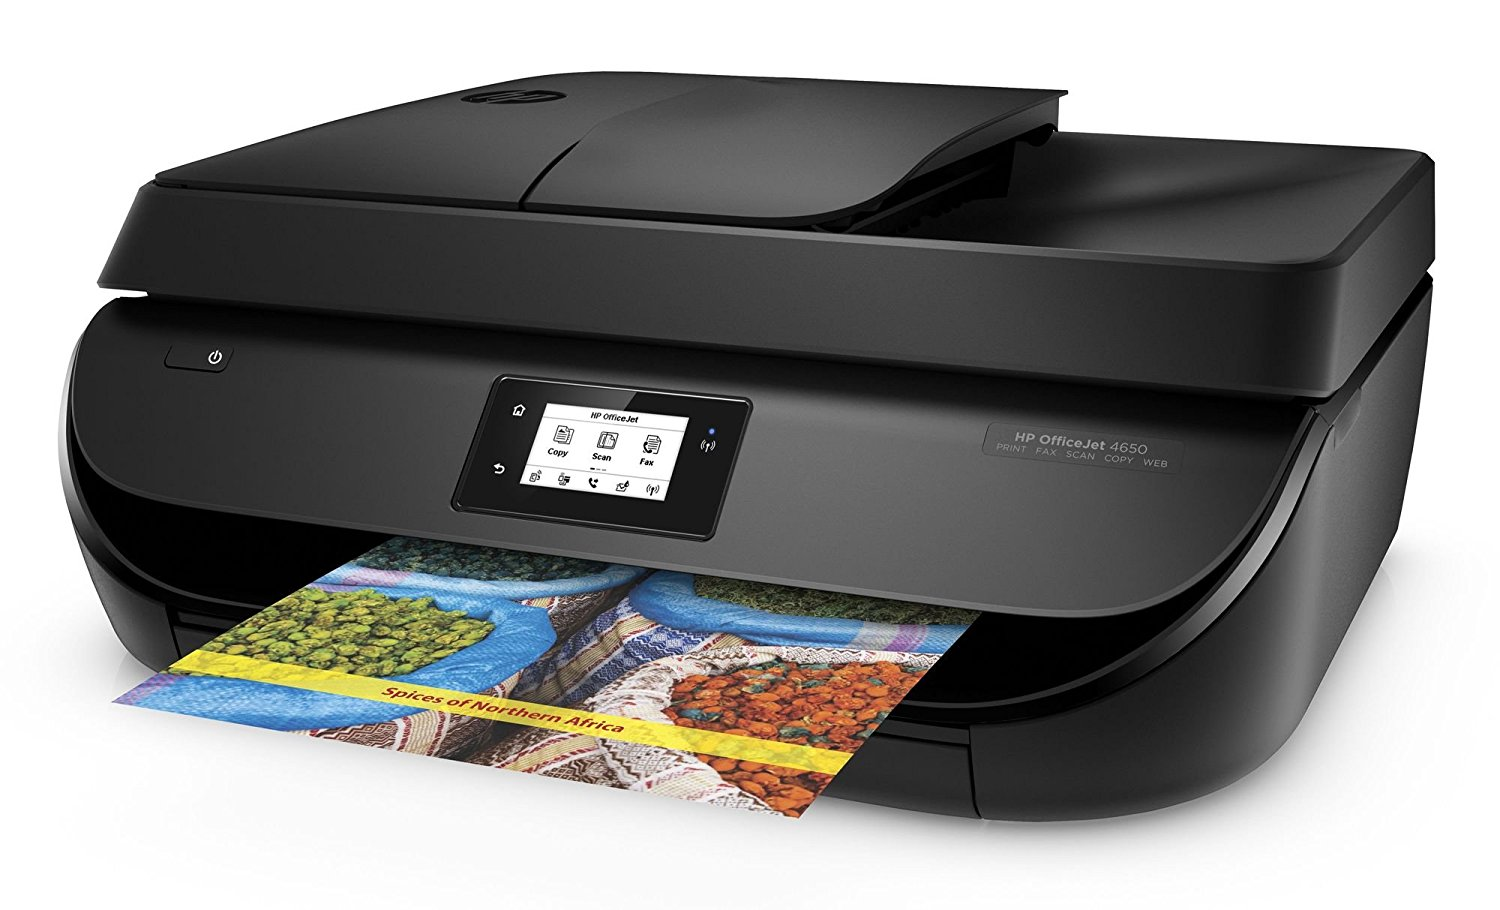 HP OfficeJet Pro 4650 Driver Ubuntu 18.04 How to Download and Install - Featured